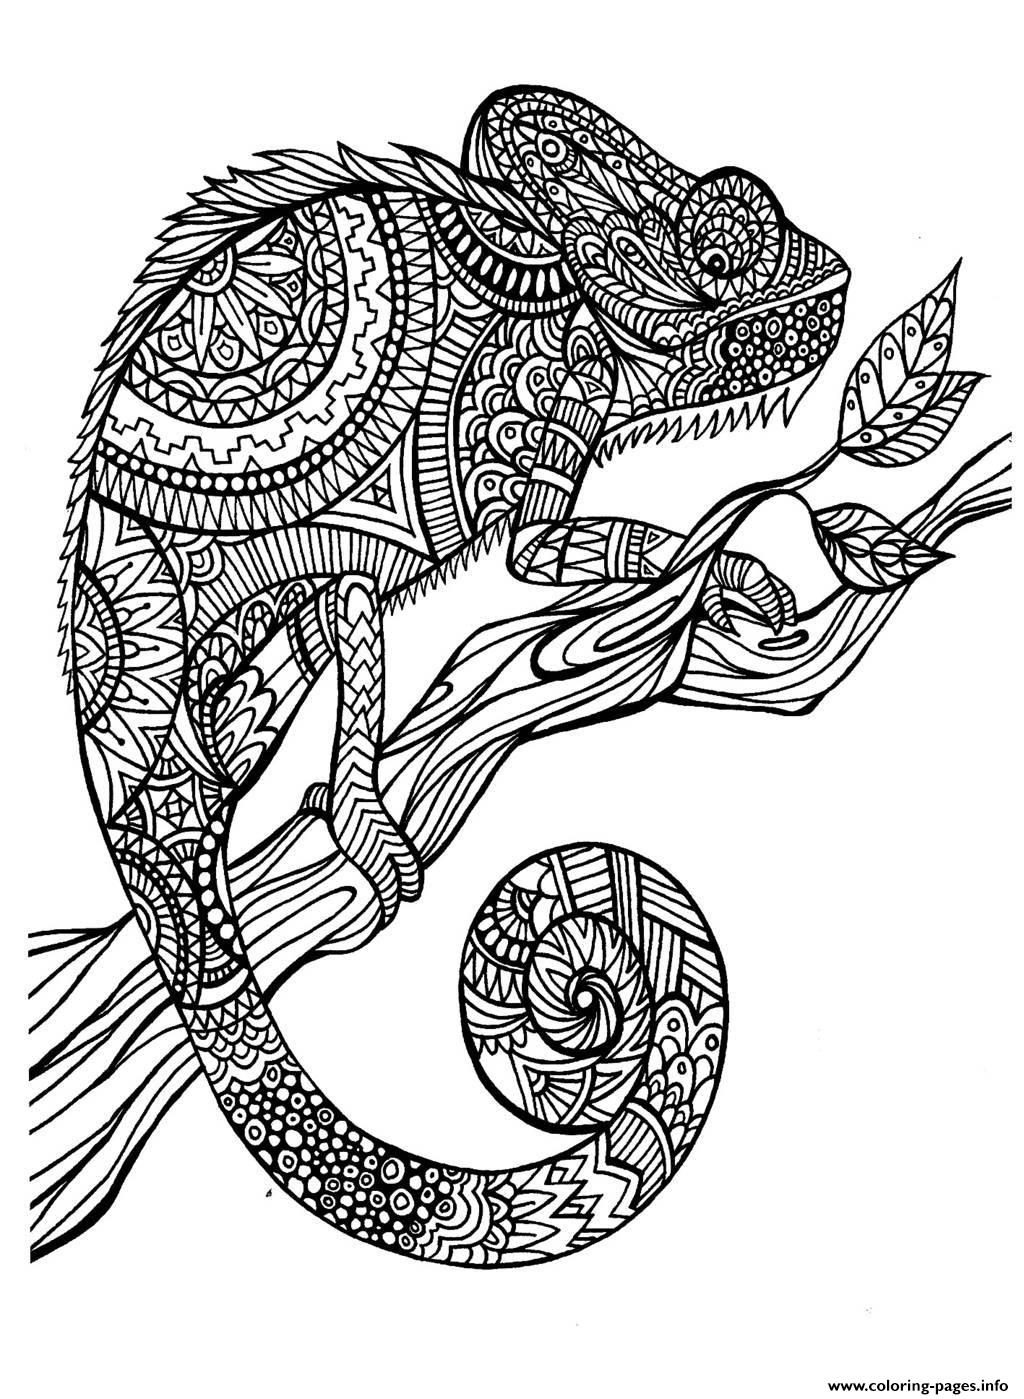 Patterns Coloring Pages To Print. Adult Cameleon Patterns coloring pages Coloring Pages Printable